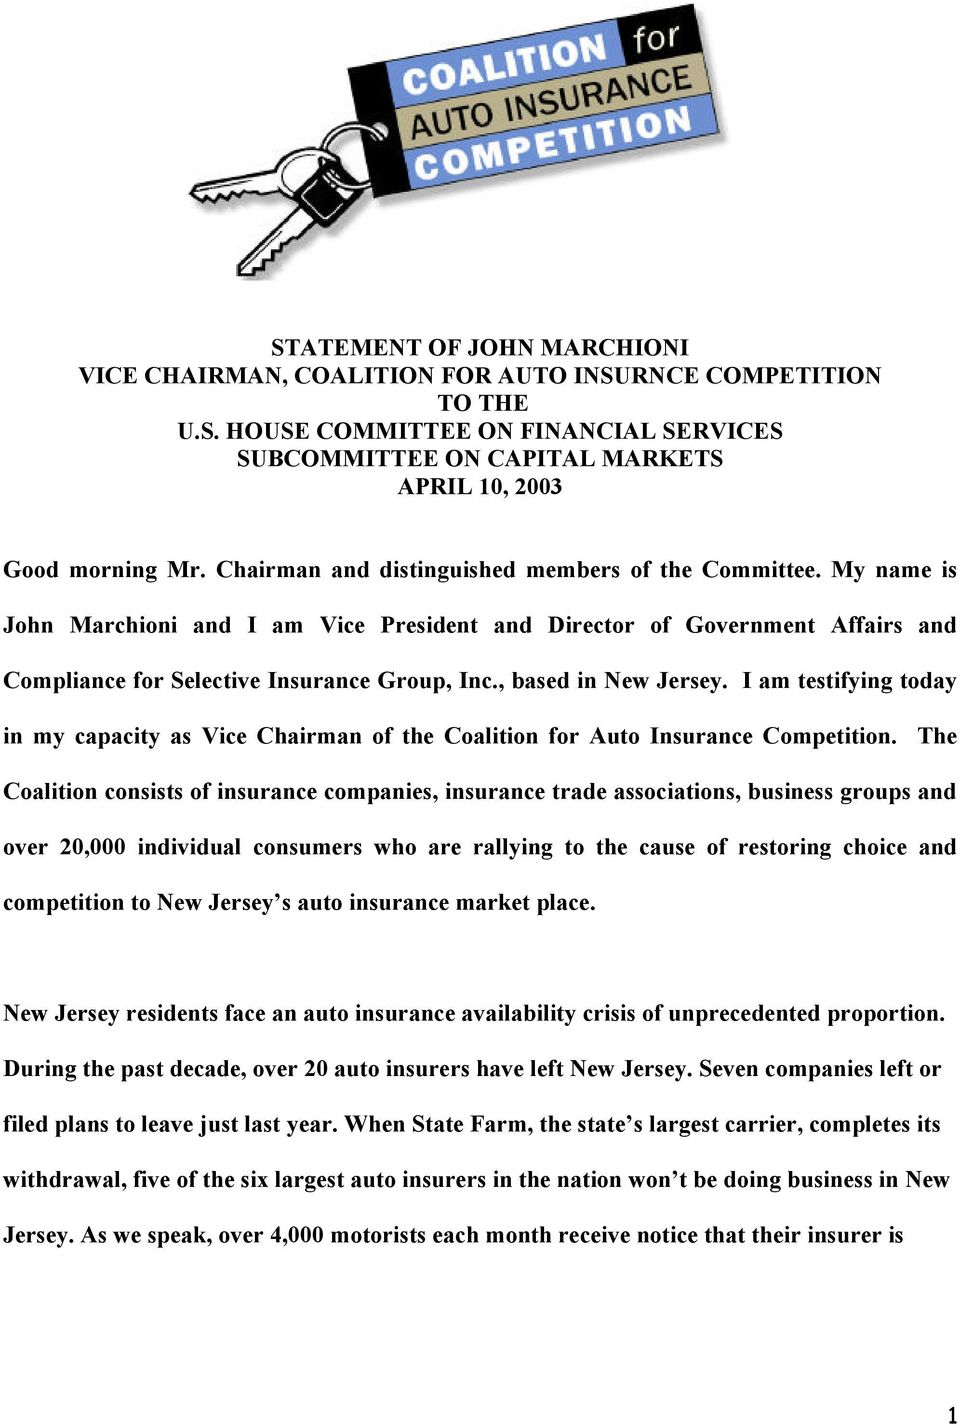 , based in New Jersey. I am testifying today in my capacity as Vice Chairman of the Coalition for Auto Insurance Competition.